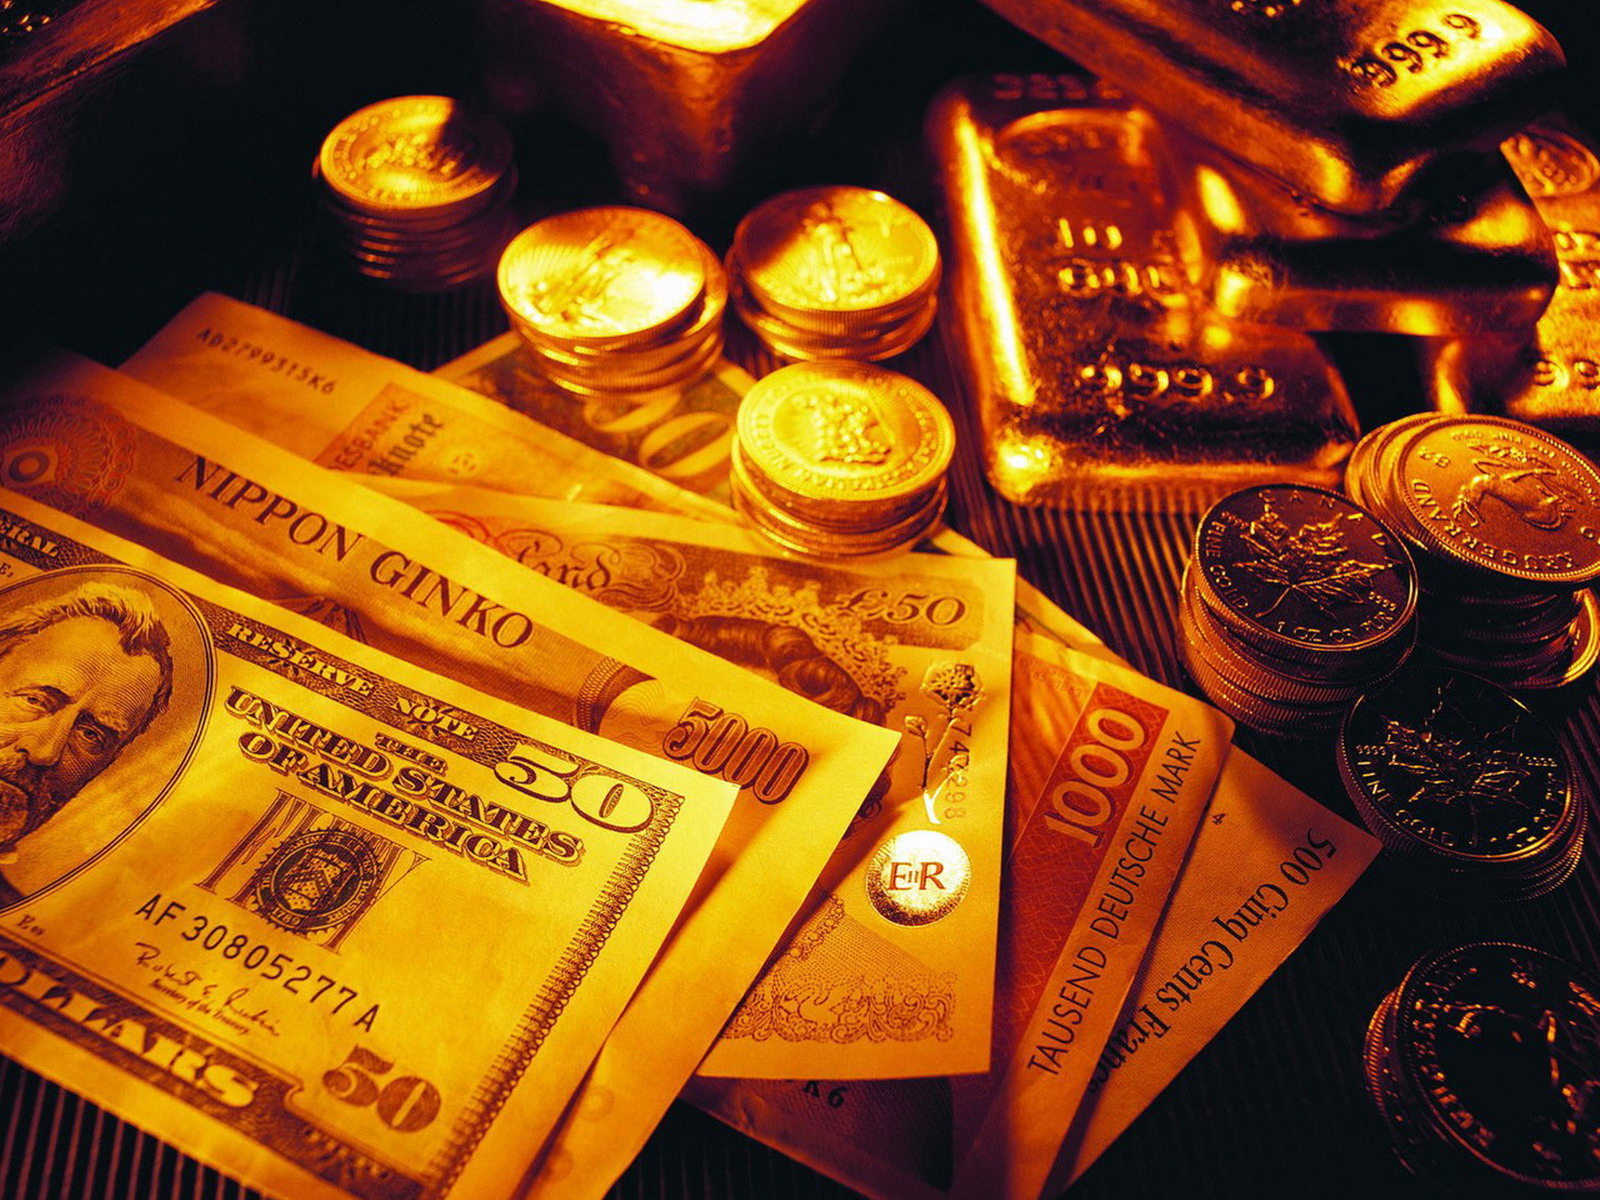 http://4.bp.blogspot.com/_2UbsSBz9ckE/S61qSAxRutI/AAAAAAAABIE/q3Y0JL9q5_8/s1600/Money_gold_bars_HD_wallpaper.jpg